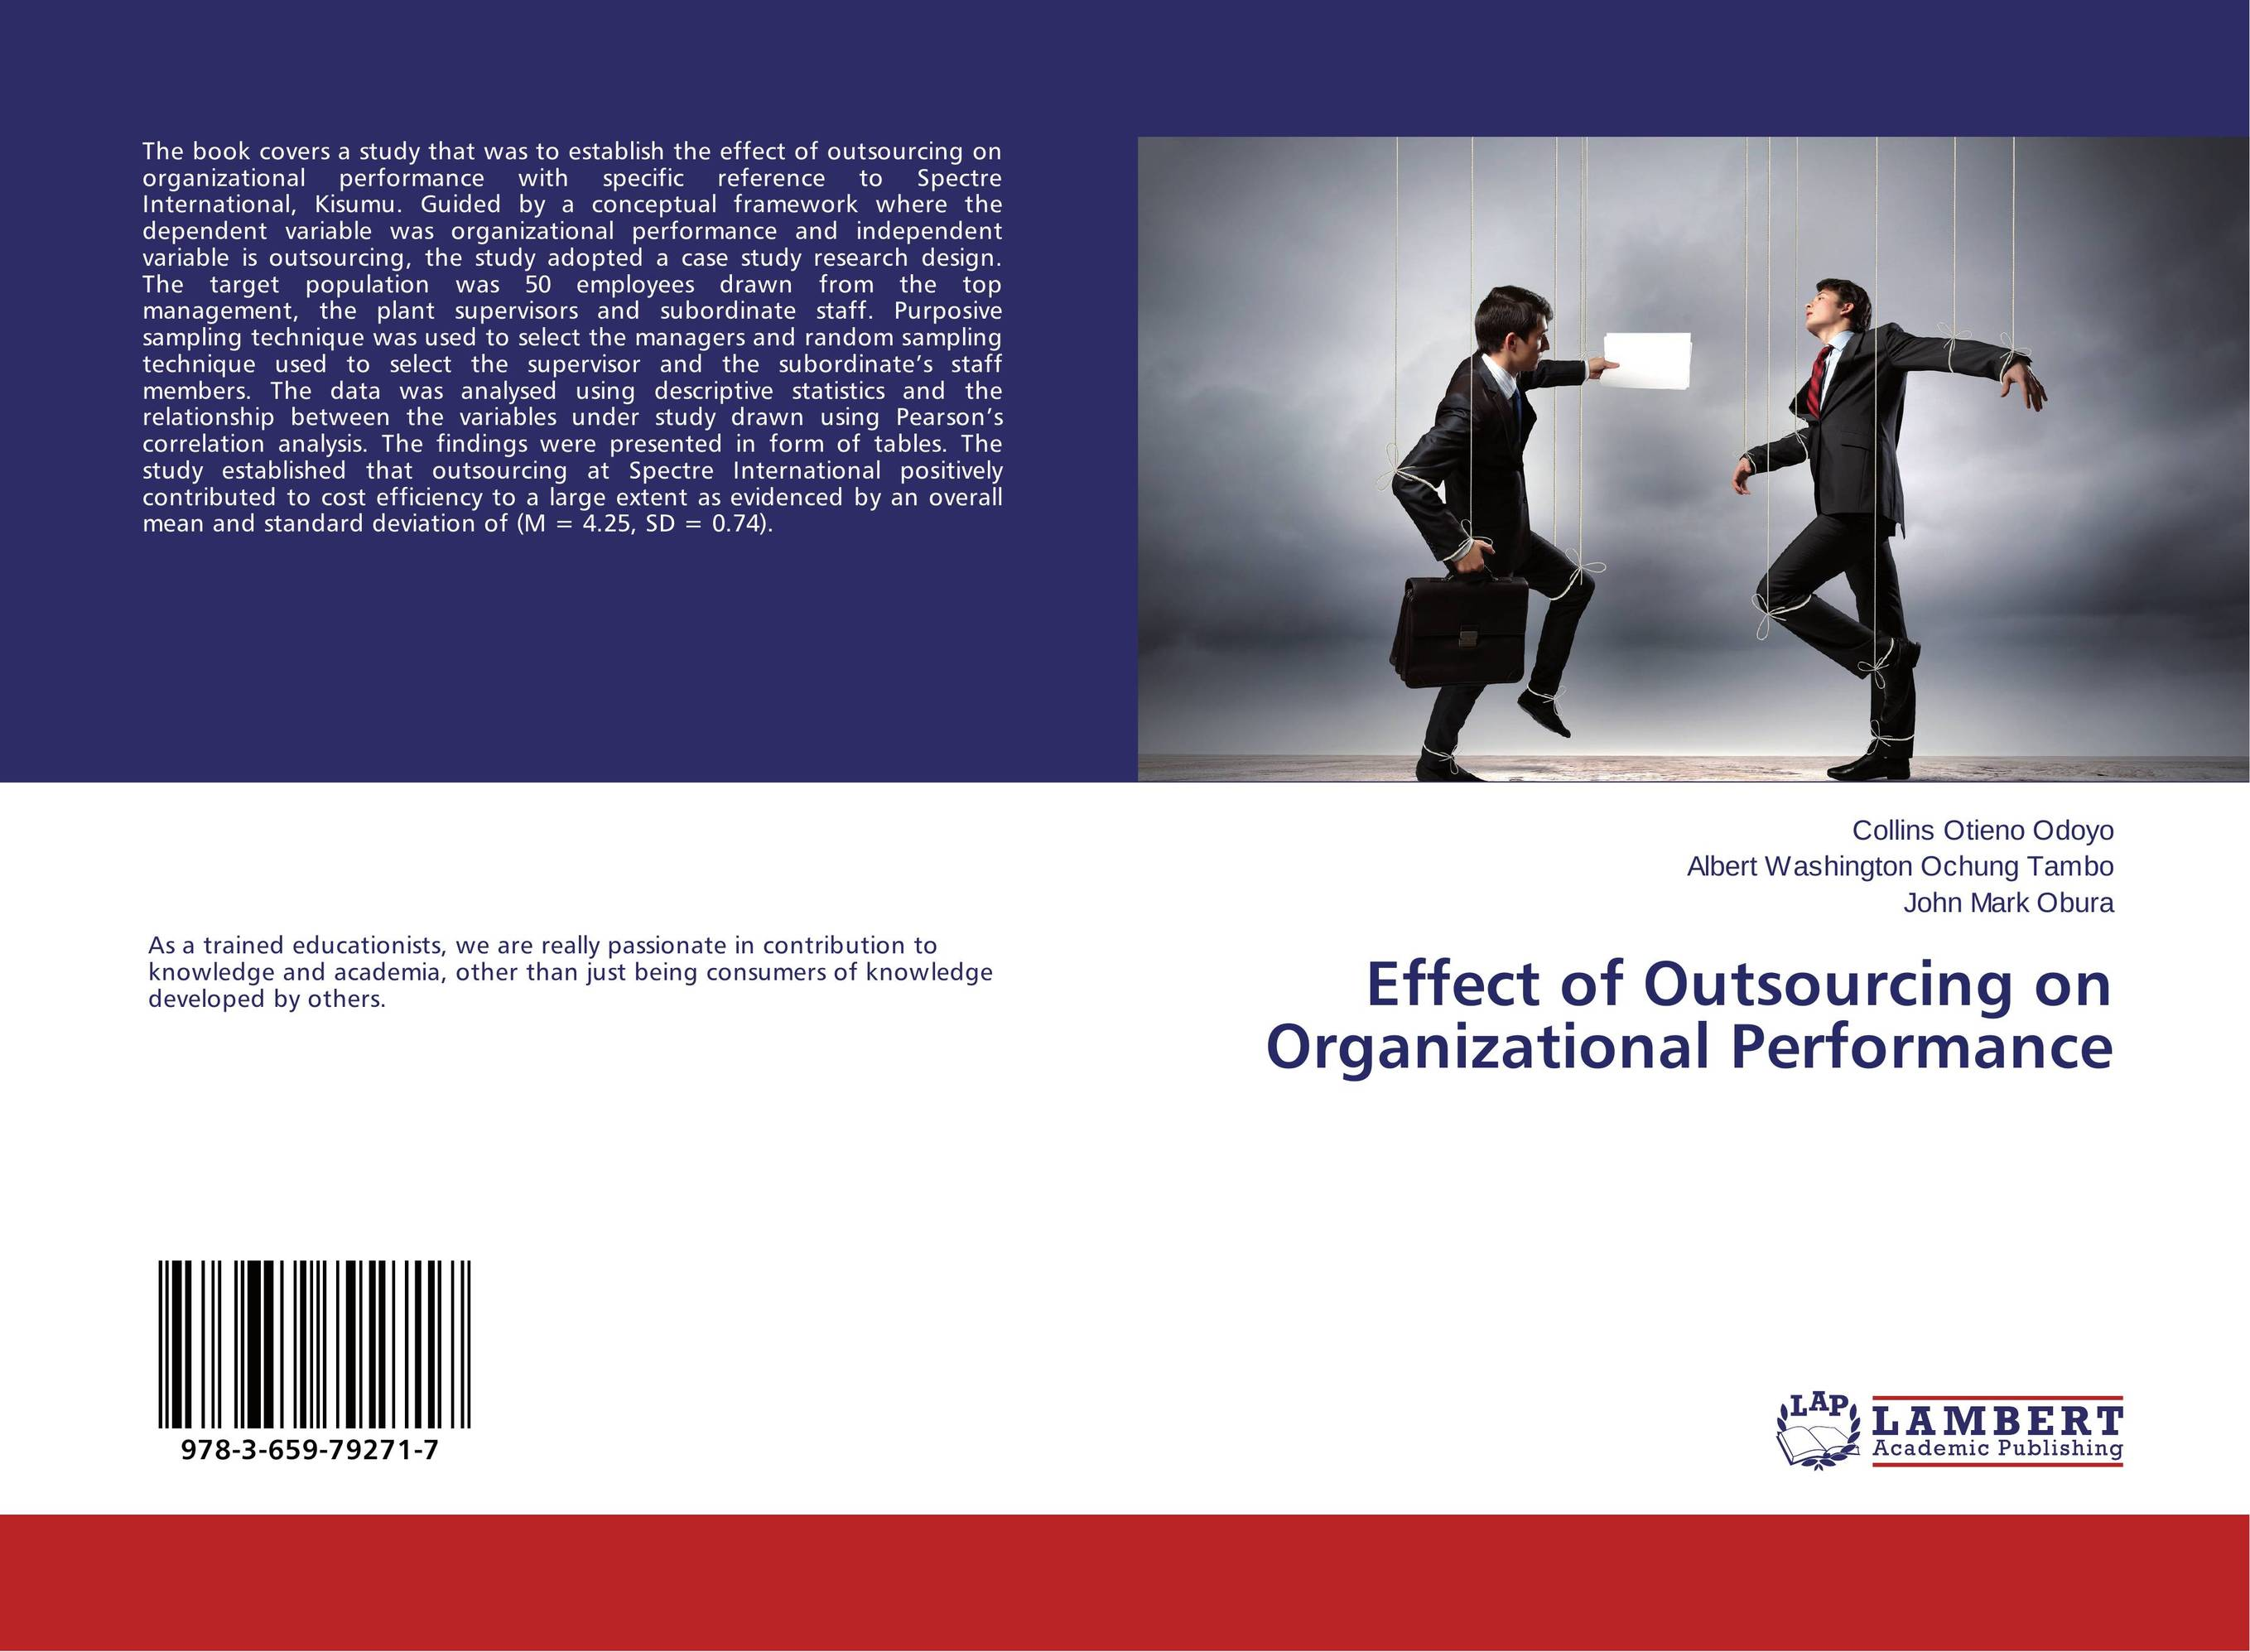 Effect of Outsourcing on Organizational Performance